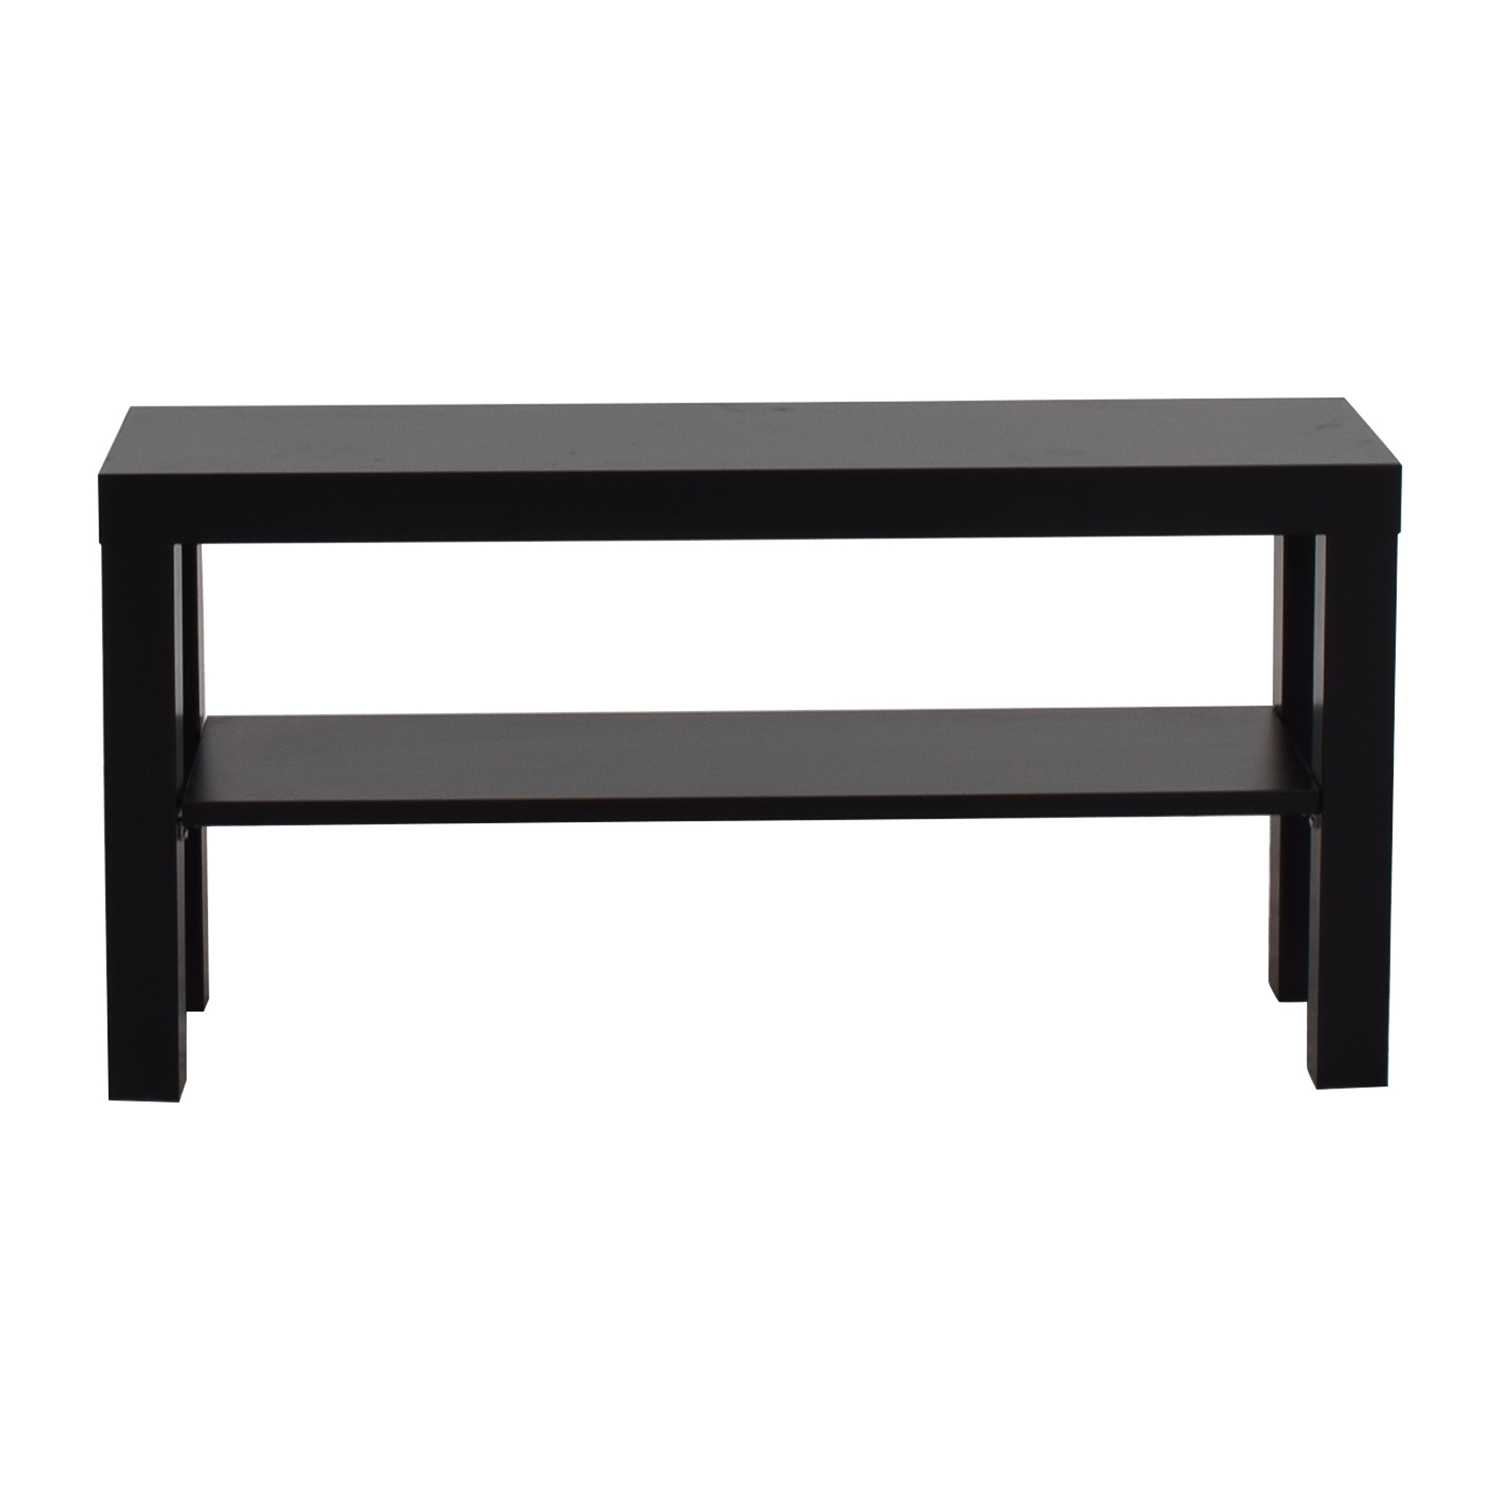 Ikea lack sofa table lack coffee table oak effect 90x55 cm for Lack sofa table hack